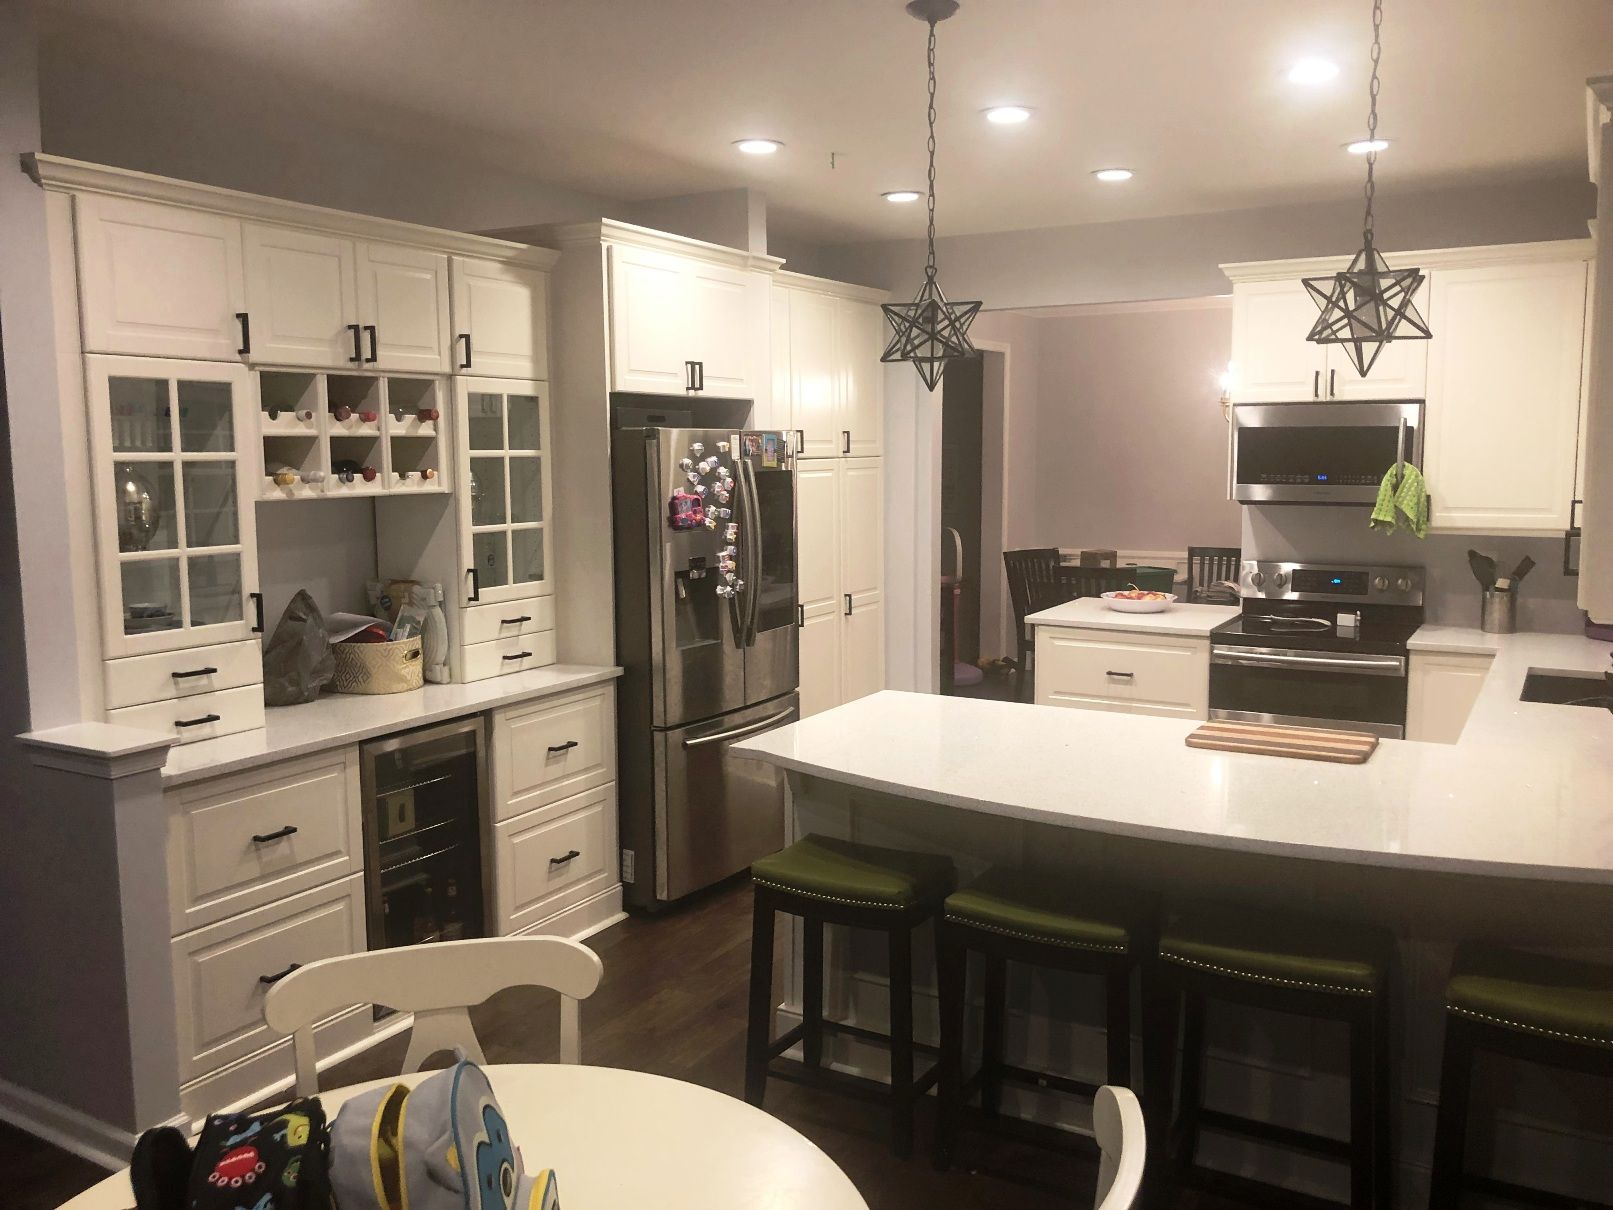 The Area Next To The Fridge Features Ikea Bodbyn Cabinetry To Create A Separate Built In Beverage S In 2020 Ikea Kitchen Design Kitchen Inspiration Design Ikea Kitchen